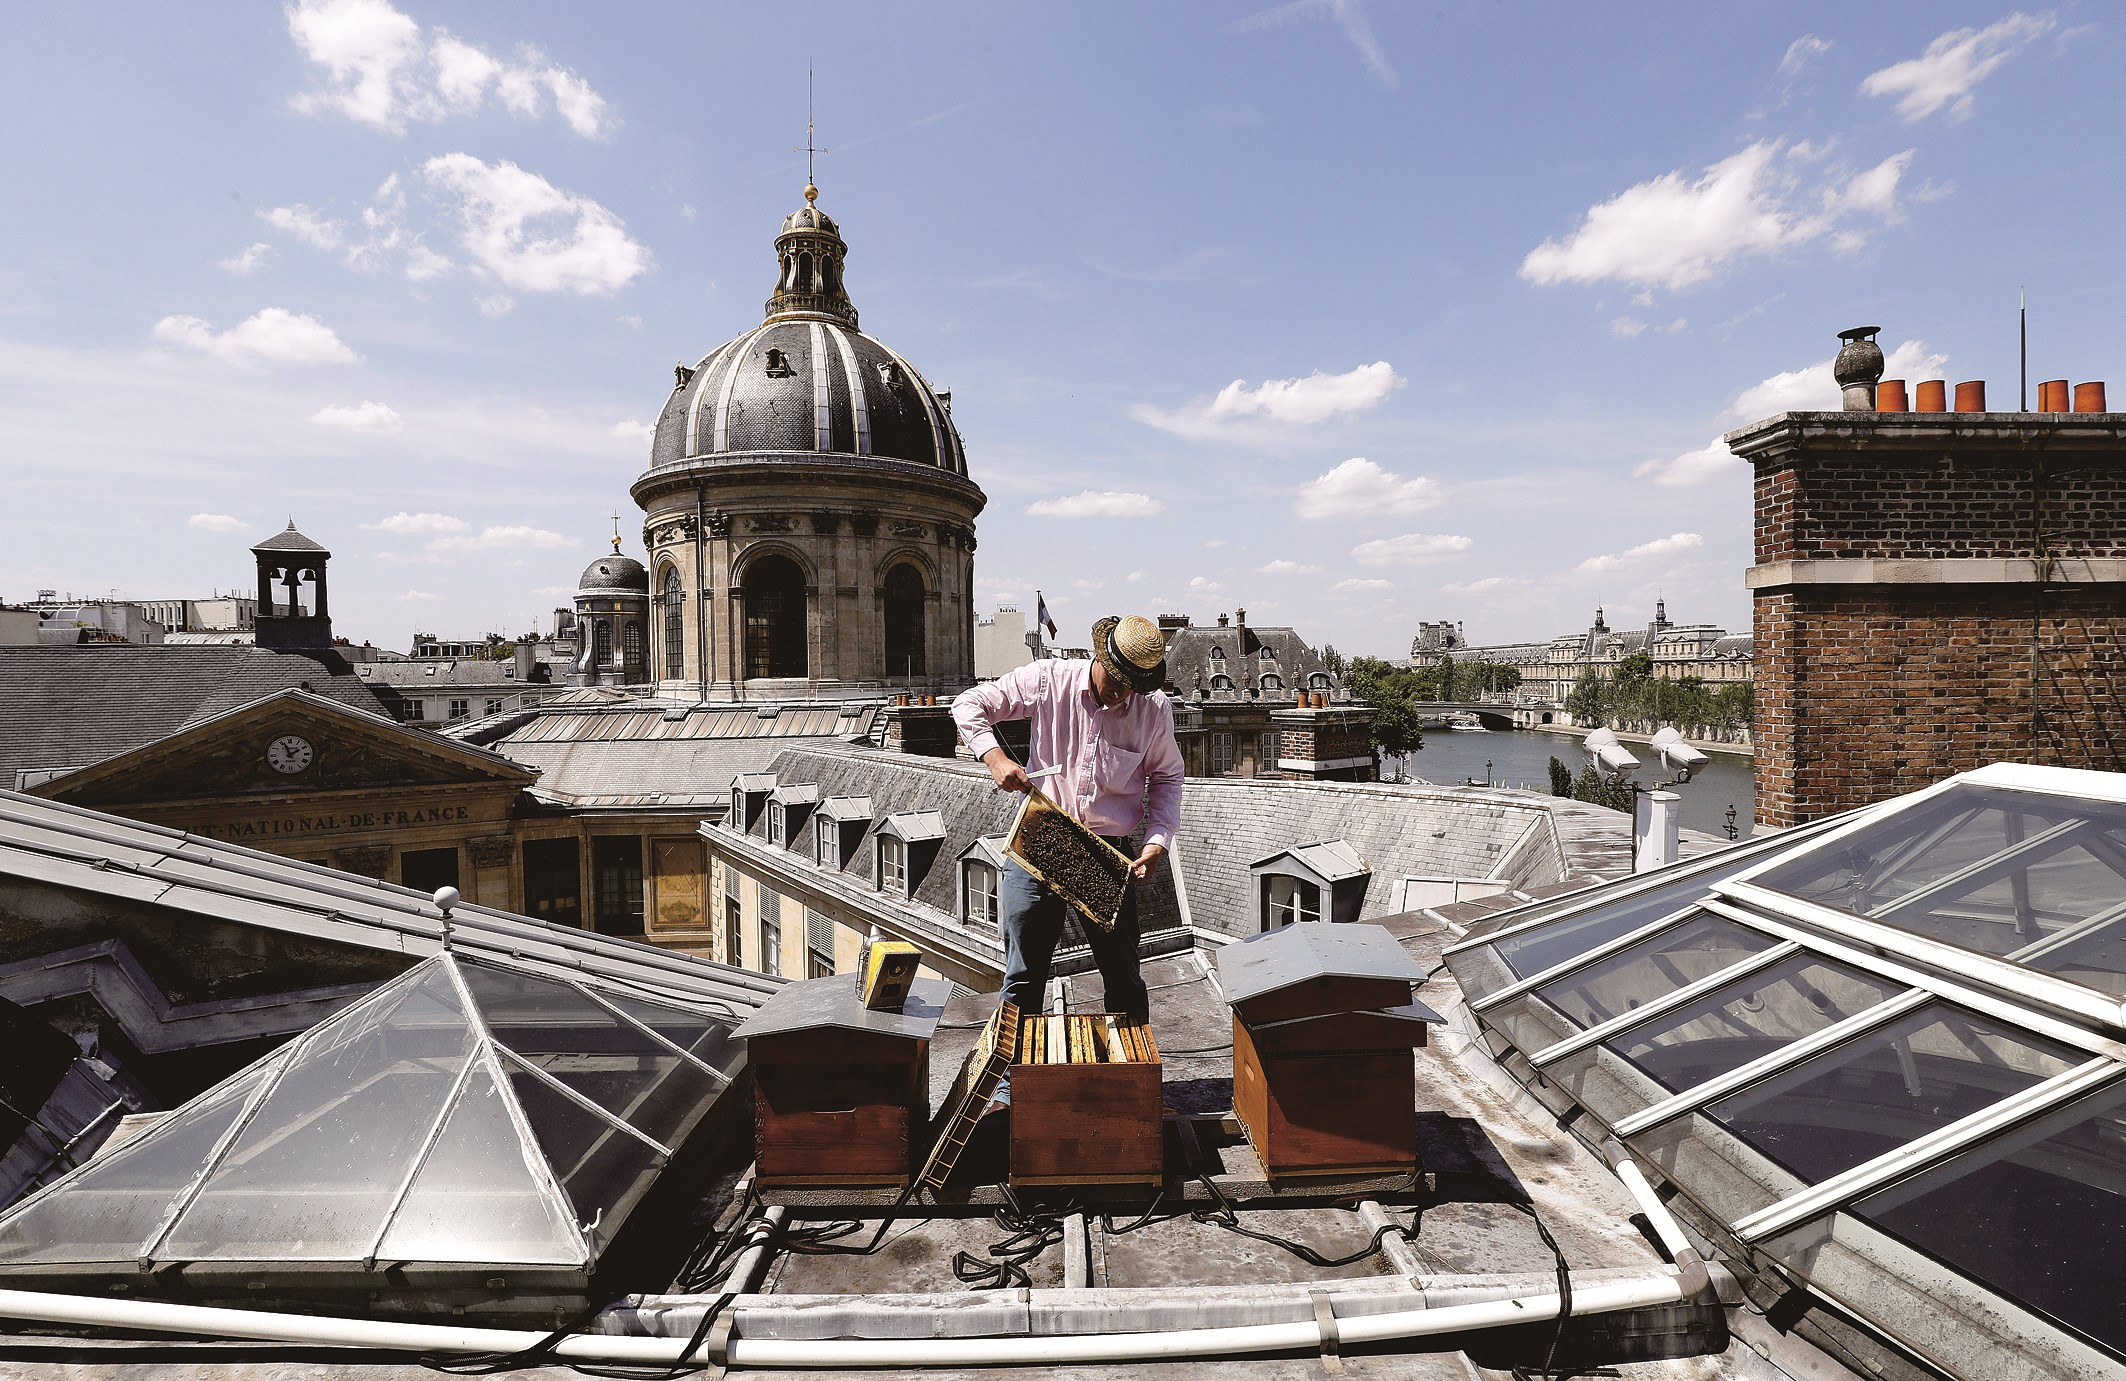 French beekeeper Audric de Campeau checks his beehives set on the roof of The Mazarine Library at The French Institute in Paris. To check the beehives he has set up on the roof of the sprawling Monnaie de Paris, on the banks of the River Seine, Audric de Campeau slips on a harness over his trousers for safety. — AFP